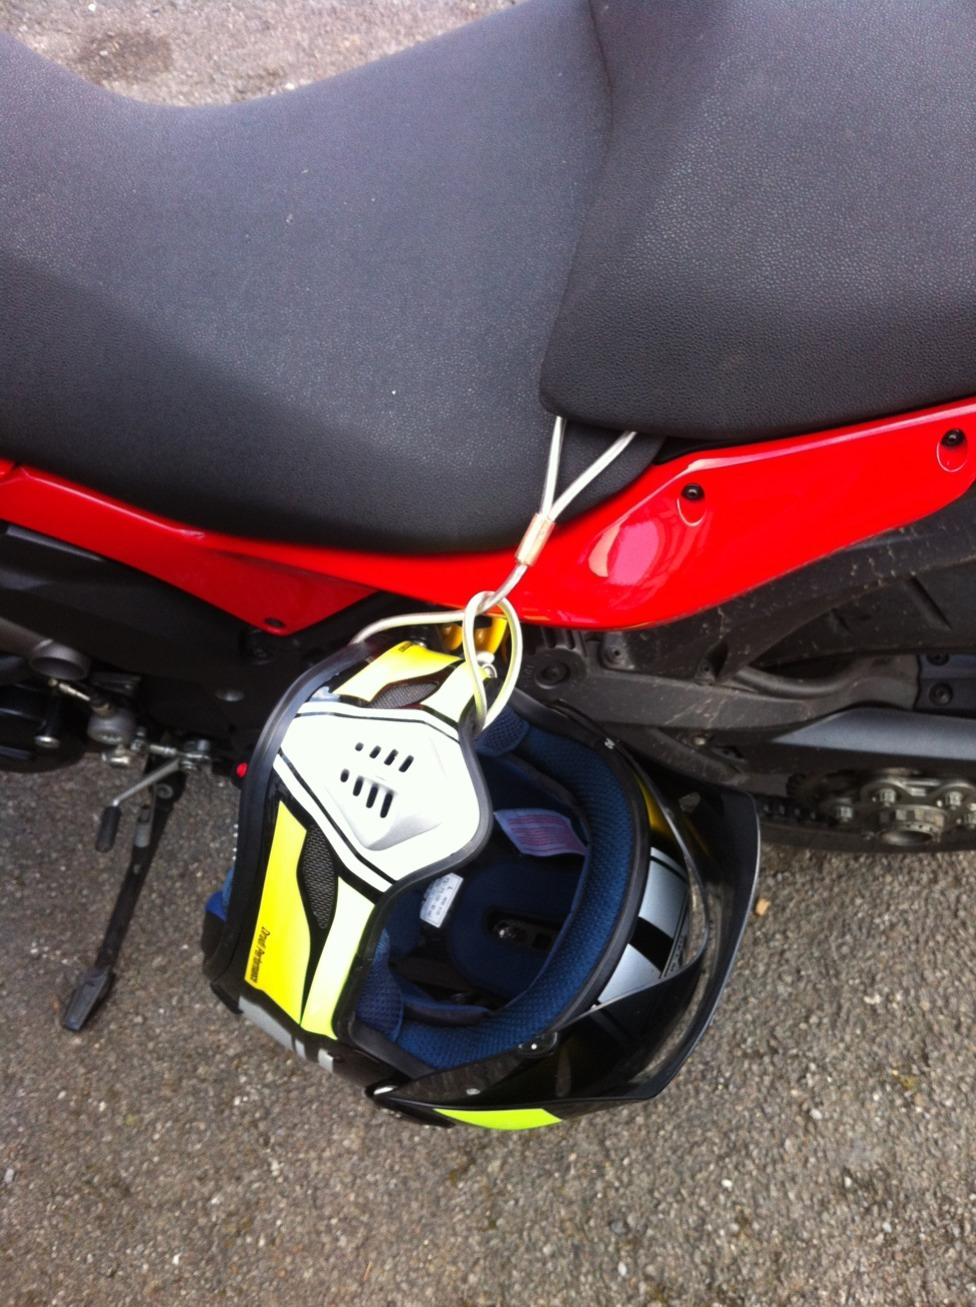 Bike Cable Lock >> My home made helmet lock and a Ducati alarm question ...